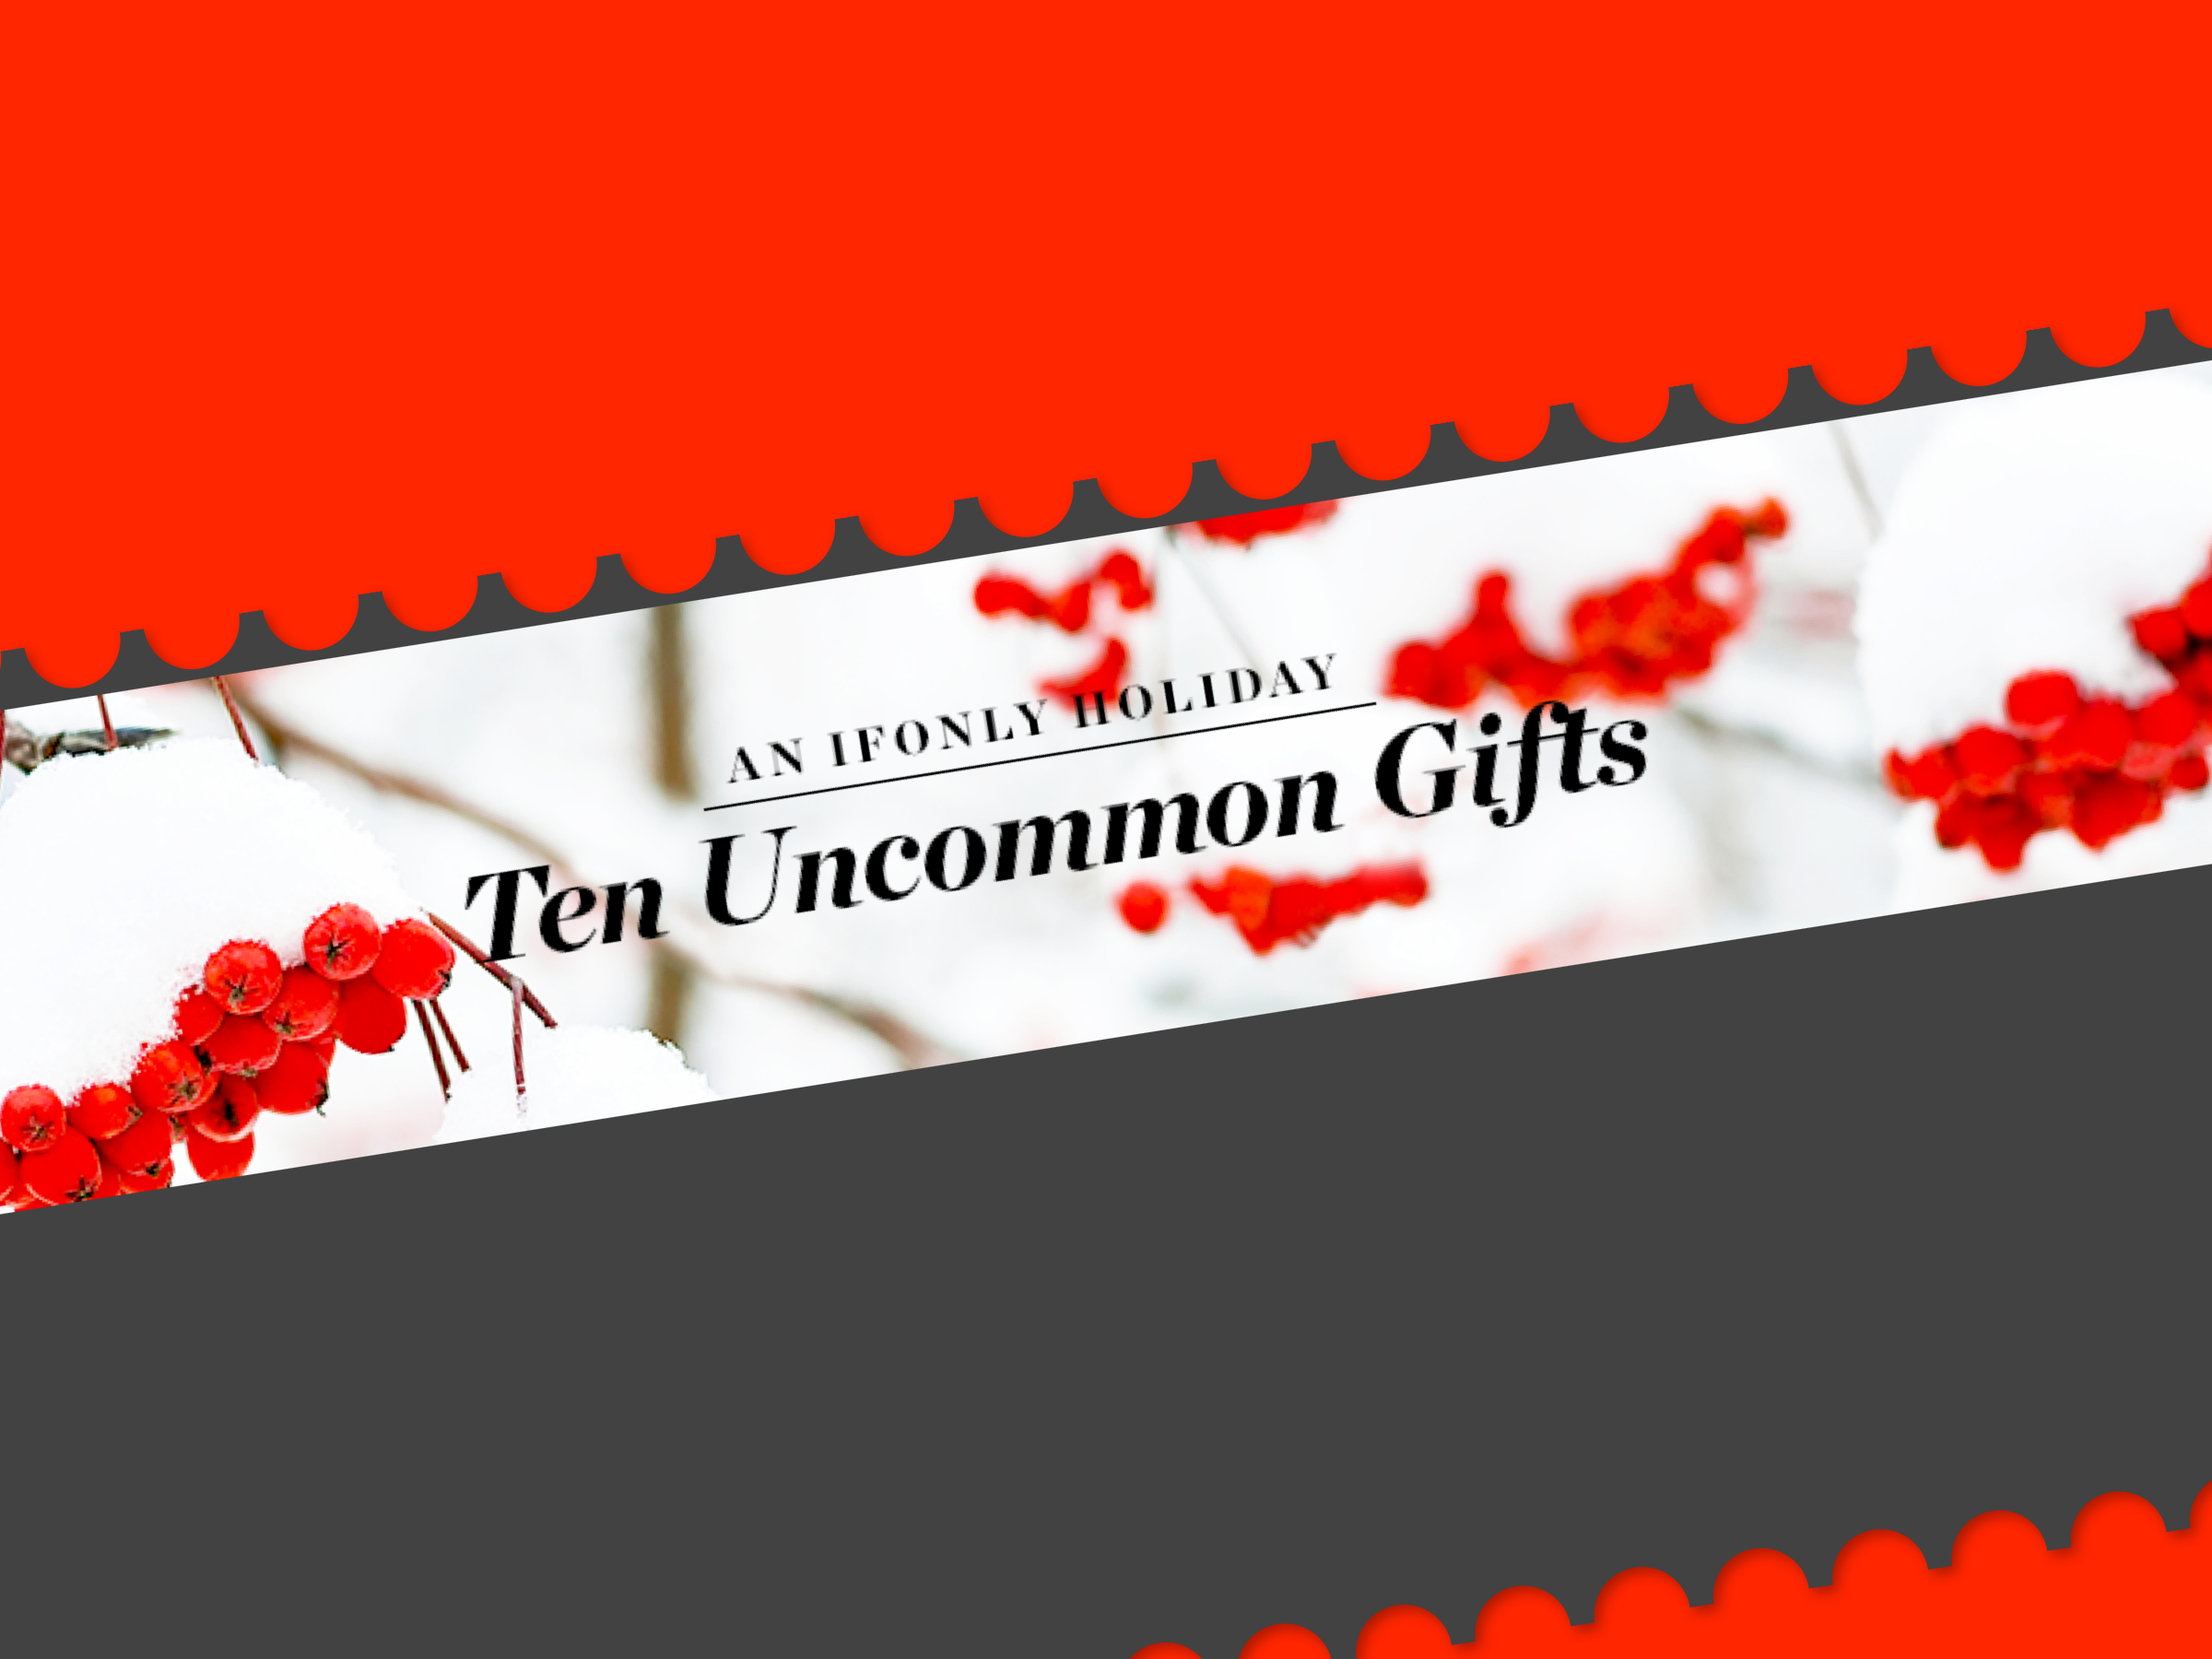 ifOnly Ten Uncommon Gifts